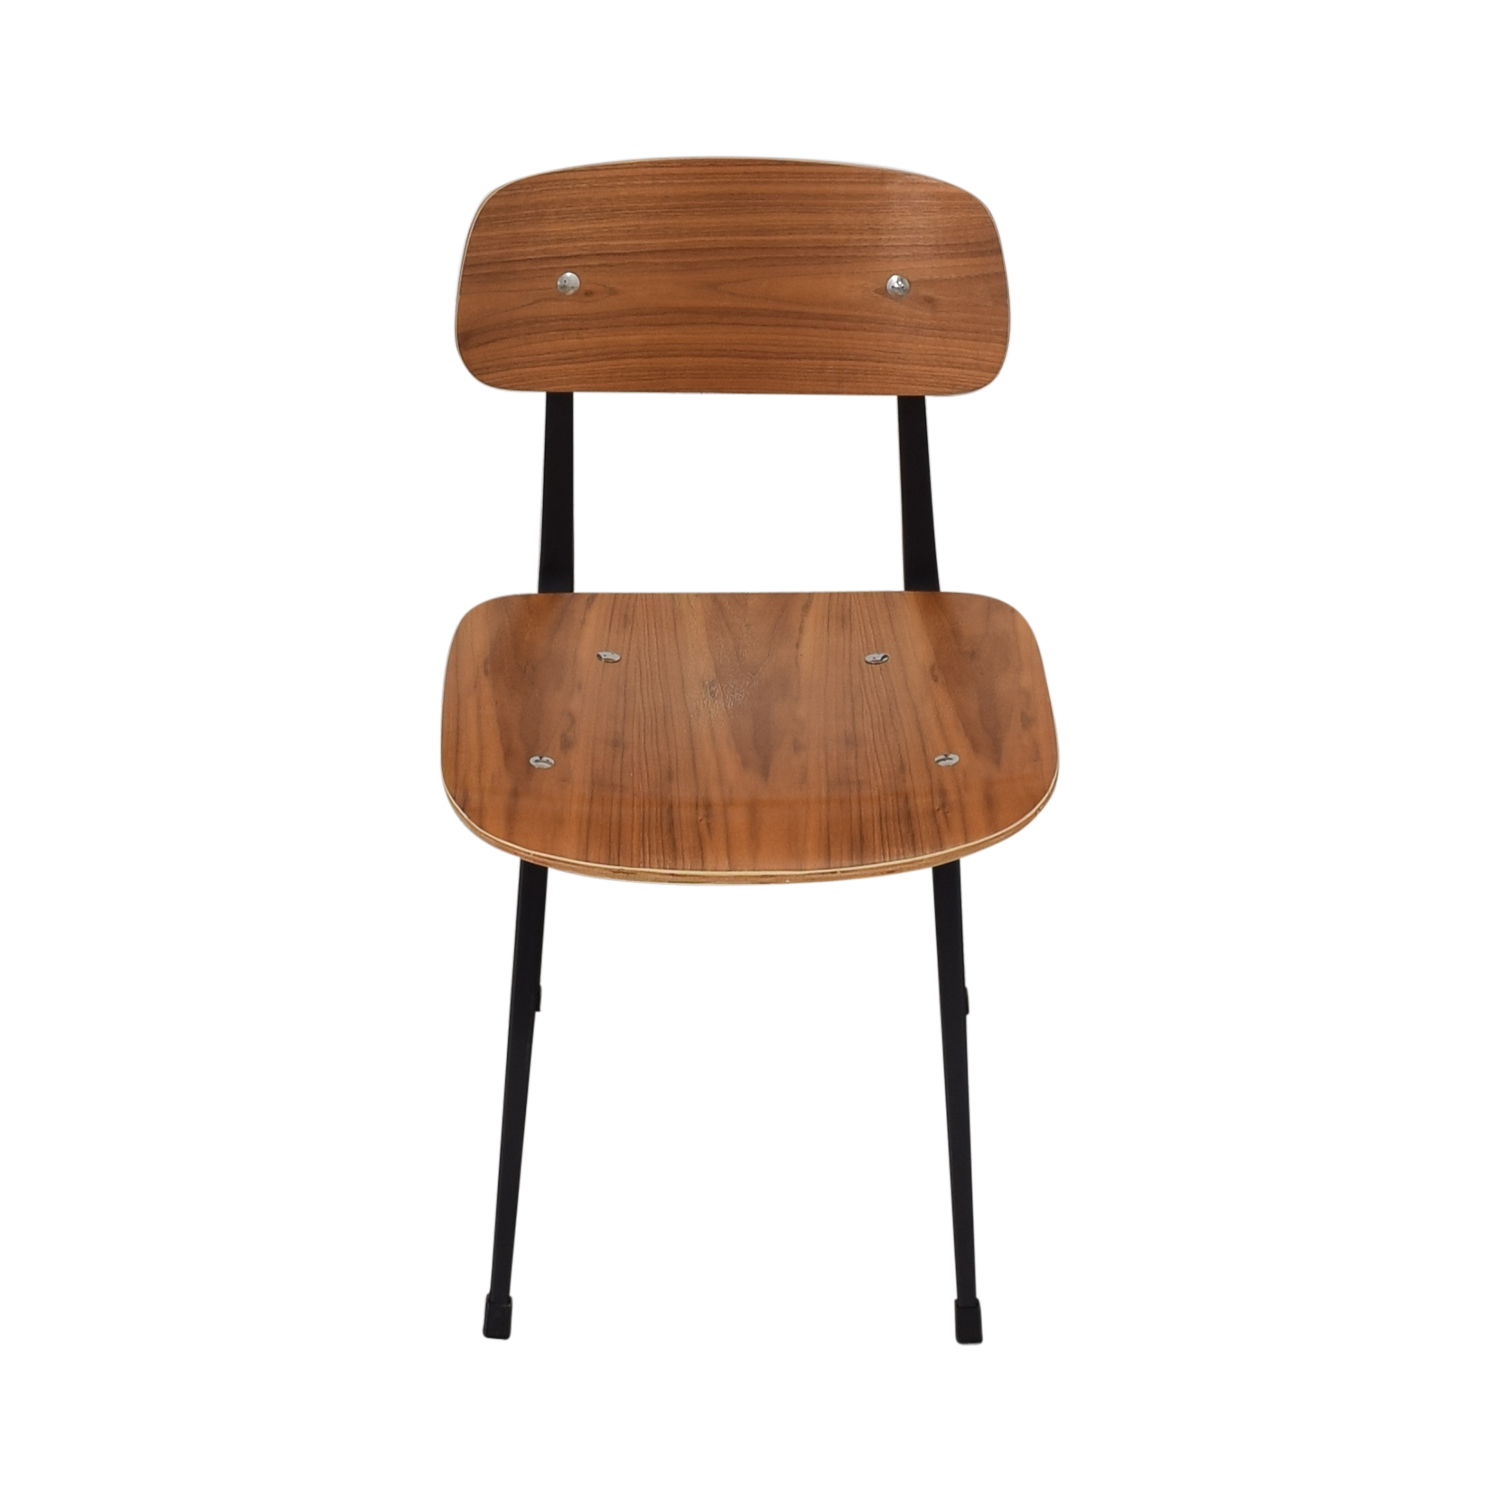 Organic Modernism Organic Modernism Cafe Walnut Dining Chair ct